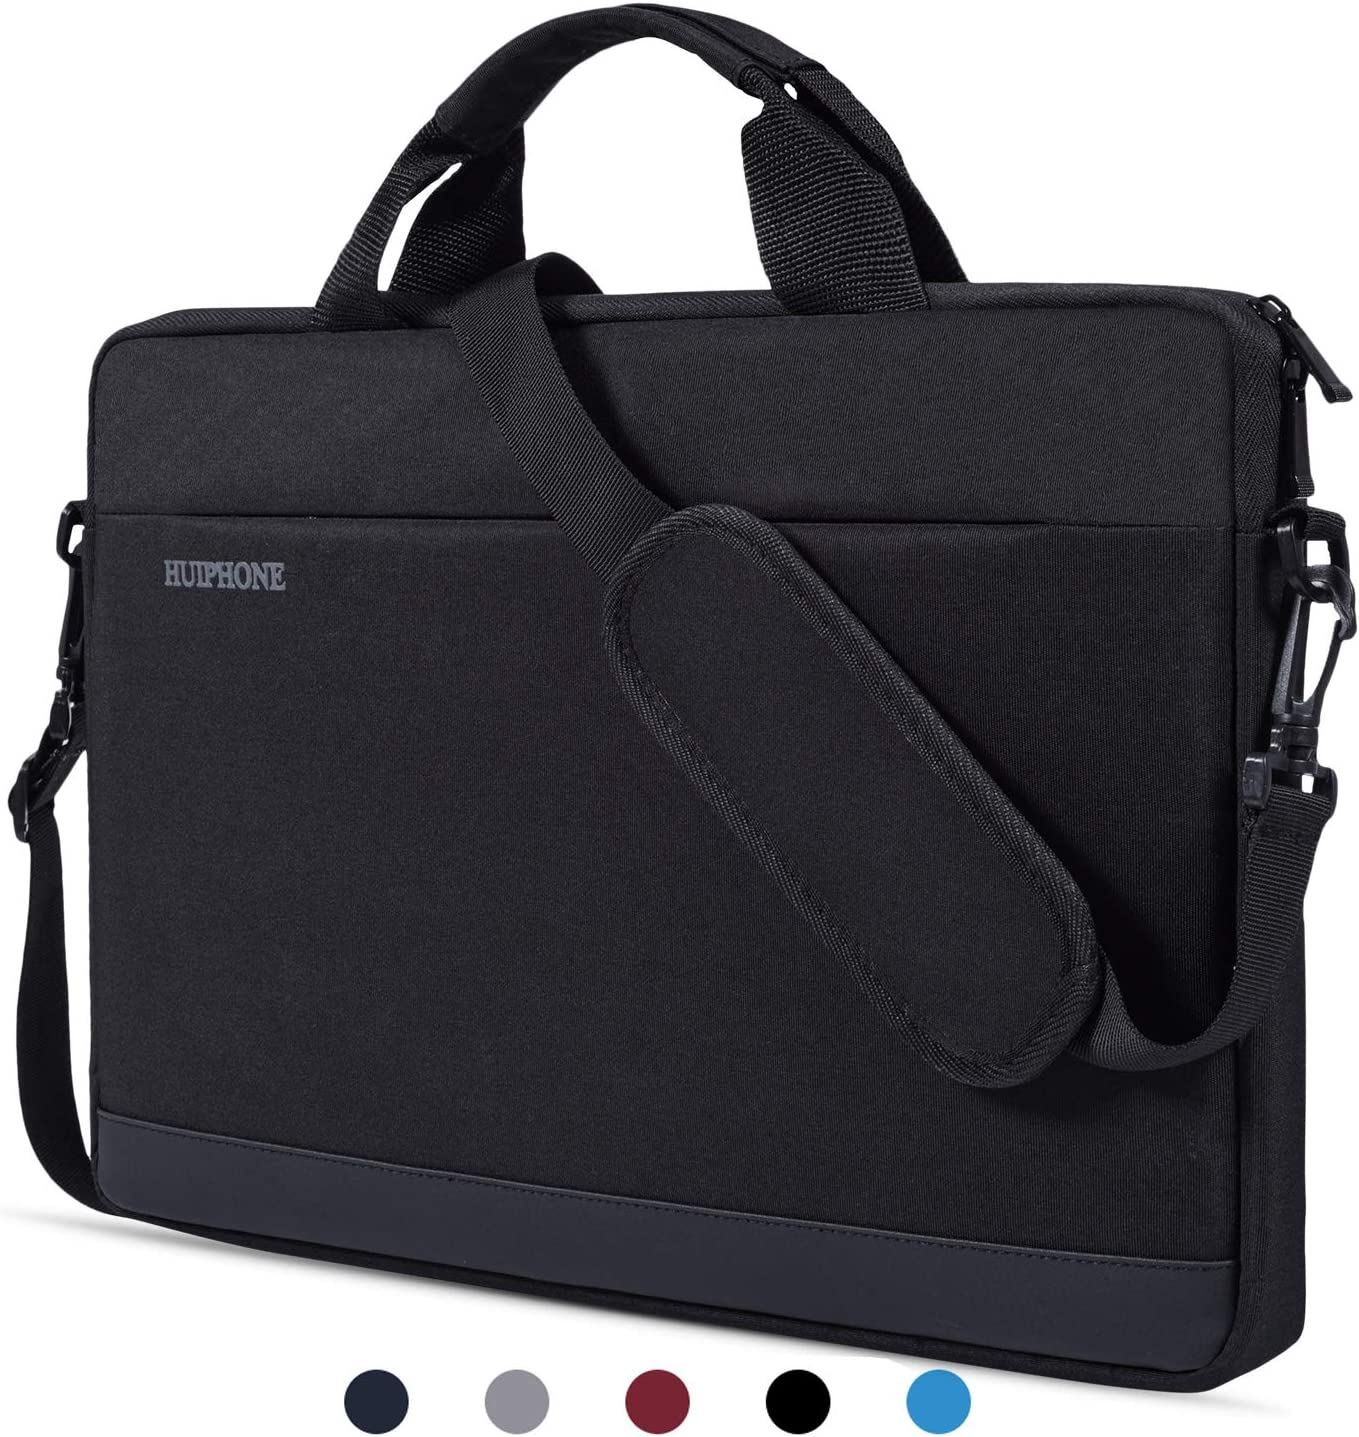 "14-15 Inch Laptop Bag Compatible with Lenovo Flex 14, Lenovo Chromebook S330 14"", HP Pavilion X360 14/Chromebook 14, DELL XPS 15 9575/Latitude 14, LG HP ASUS Acer Chromebook 14 and Most 14 inch Laptop"